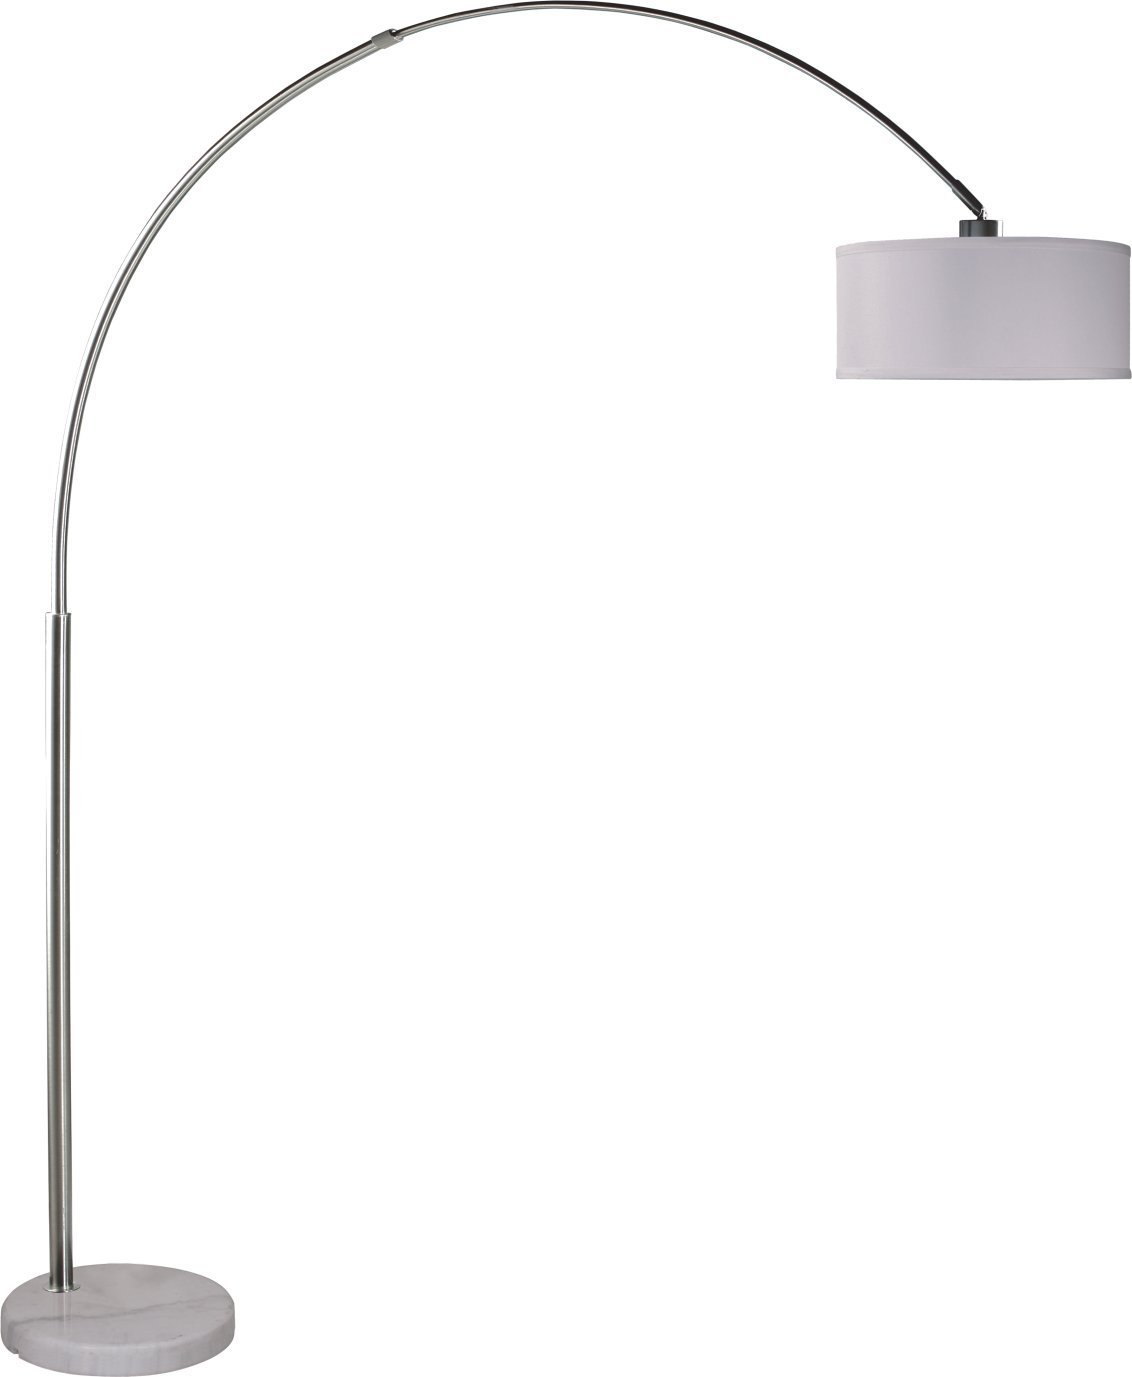 """SH Lighting Towering 82"""" Arched Floor Lamp - Large Modern Arc Lamp with Hanging Drum Shade and Real Marble Base Light Fixture with Foot-Switch and 64 inch cord, Grand White by SH Lighting"""